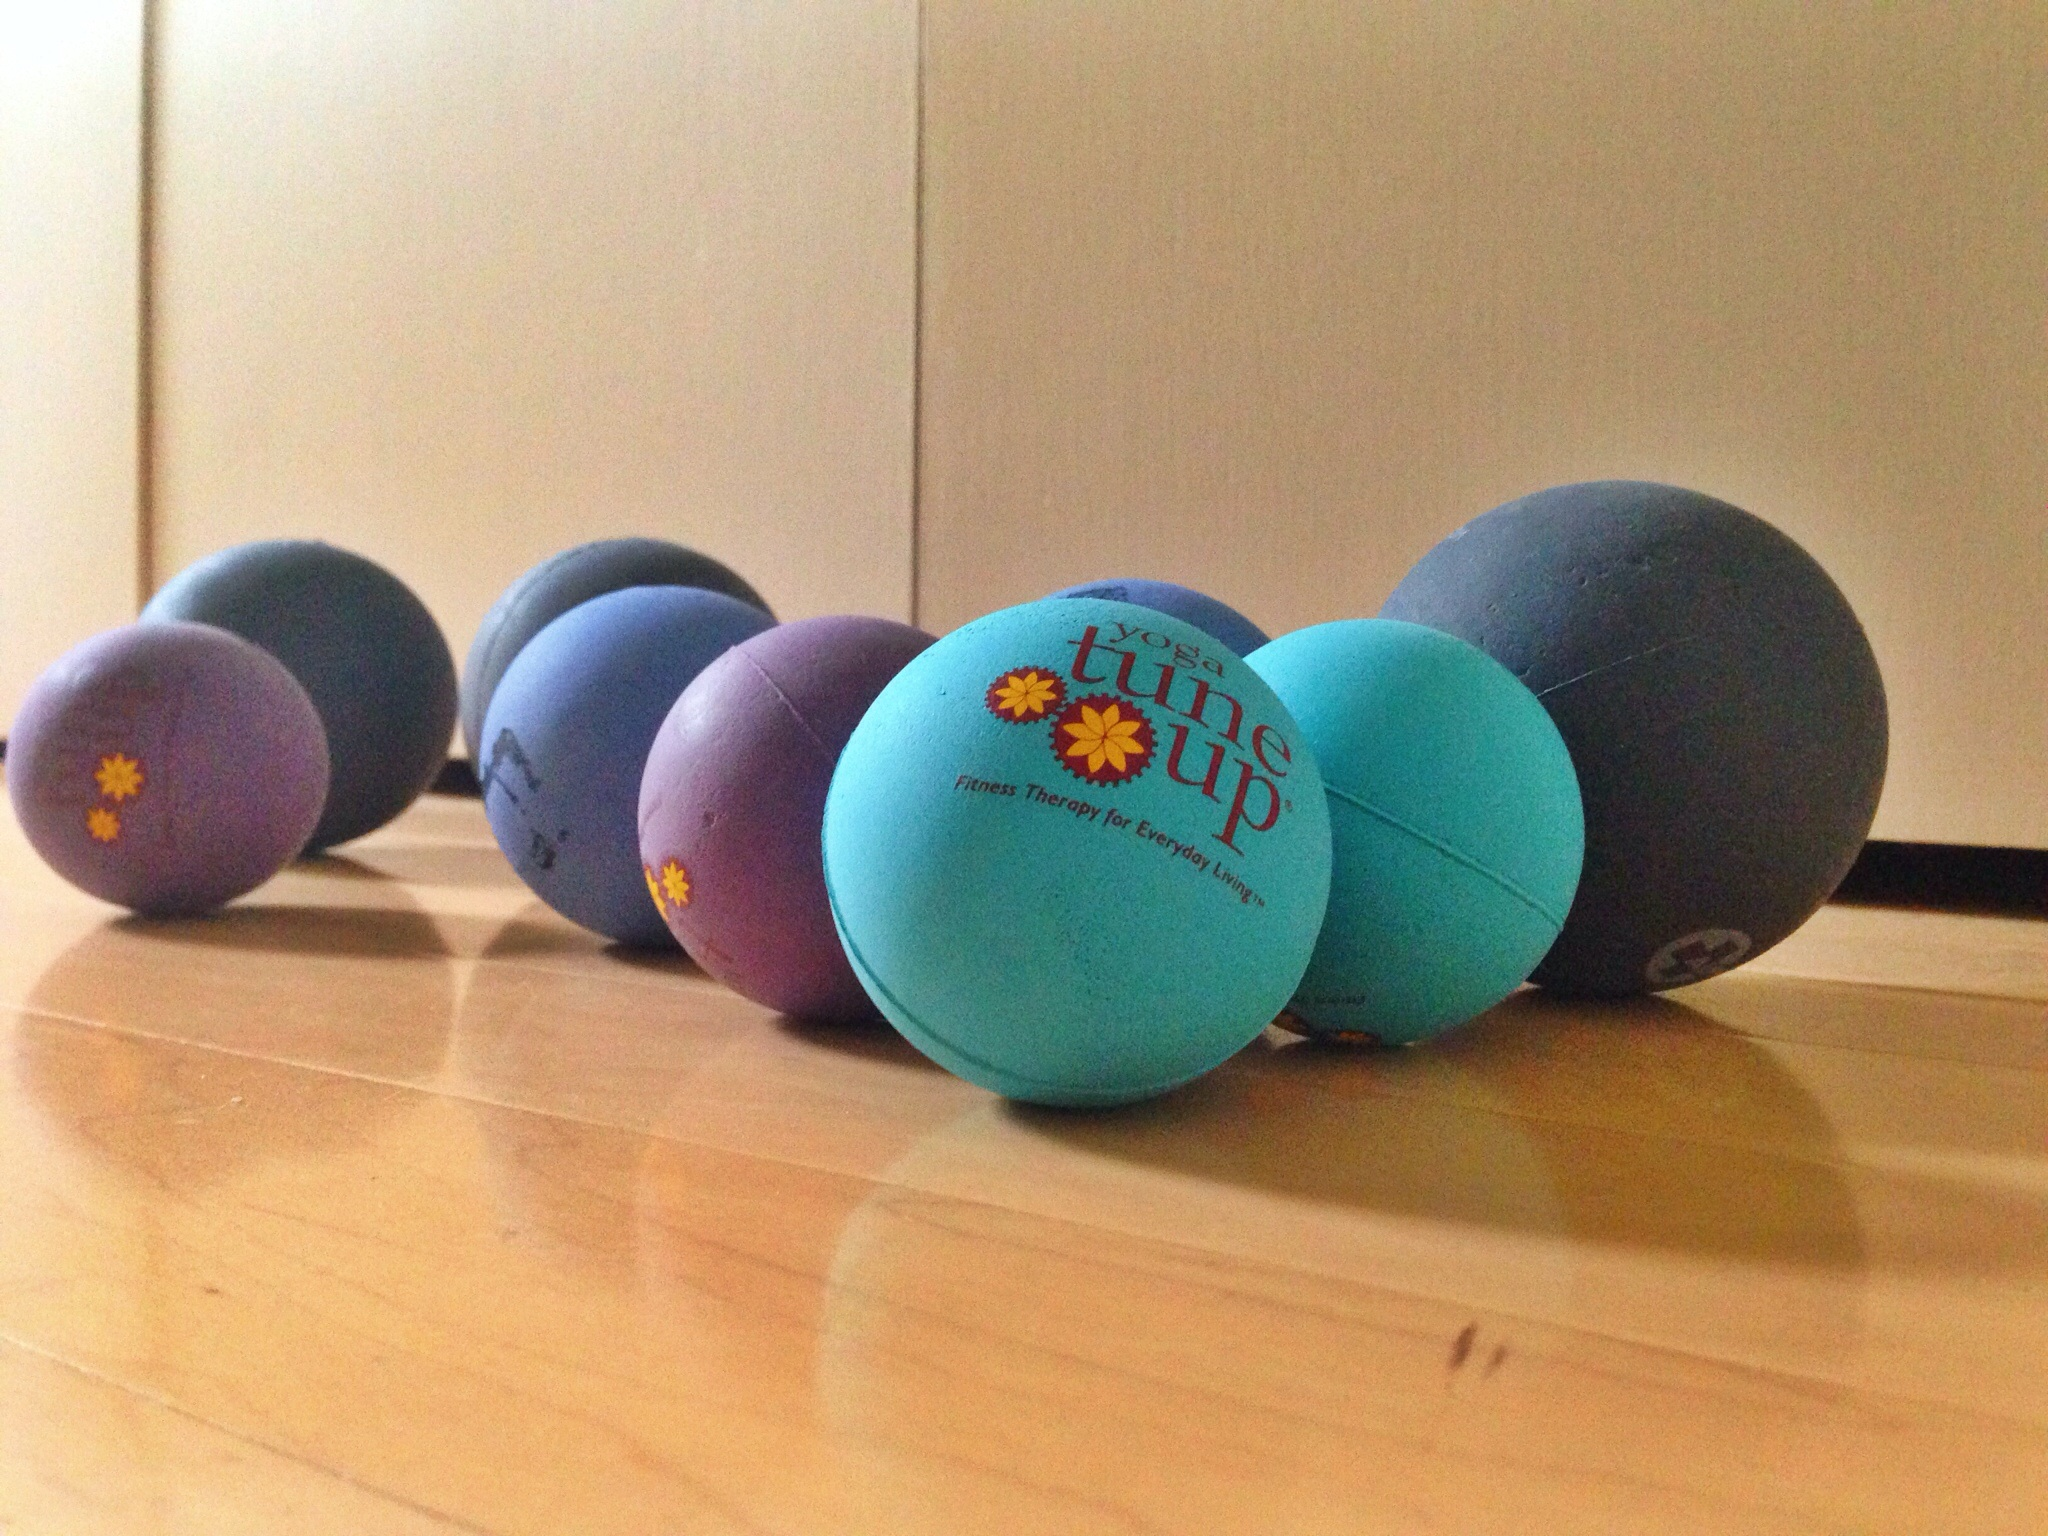 In addition to walking daily, self-massage with squishy rubber balls has helped SO much with shoulder, back, neck, and hip pain, either from music-ing or just life in general.  I live with less pain and more mobility than ever before.